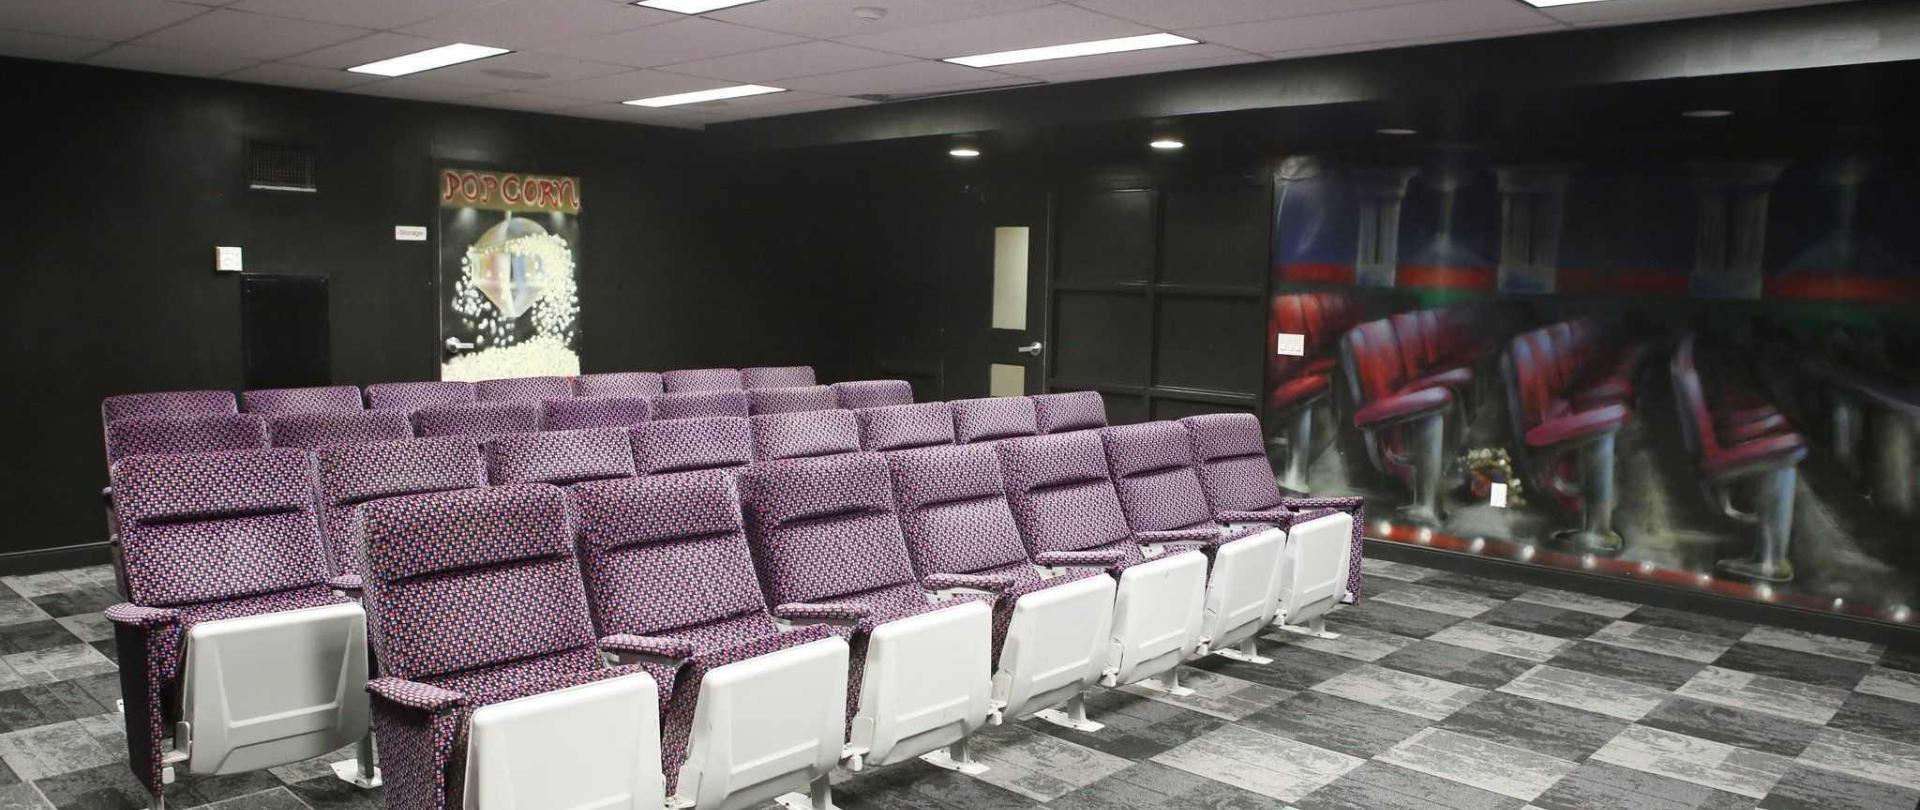 movie-lounge-2.jpg